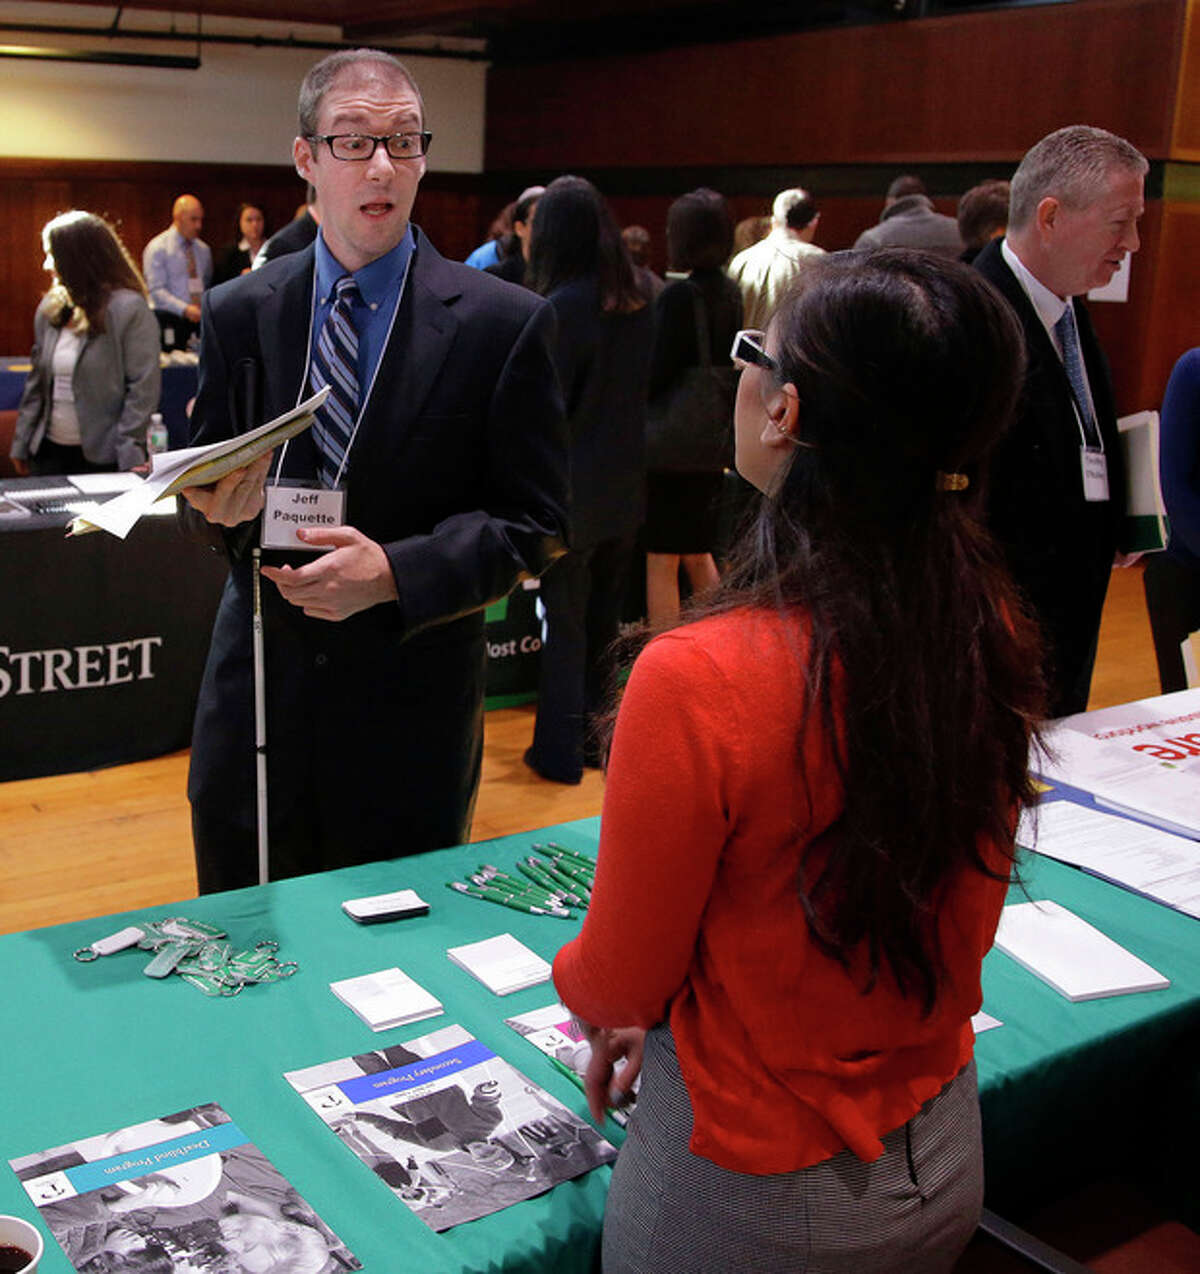 Jeff Paquette, left, a graduate of Johnson and Wales University, speaks to a recruiter during a job fair for the visually impaired on the Radcliffe Yard campus in Cambridge, Mass., Thursday, Oct. 24, 2013. Paquette, who is searching for a position in the hospitality industry, says